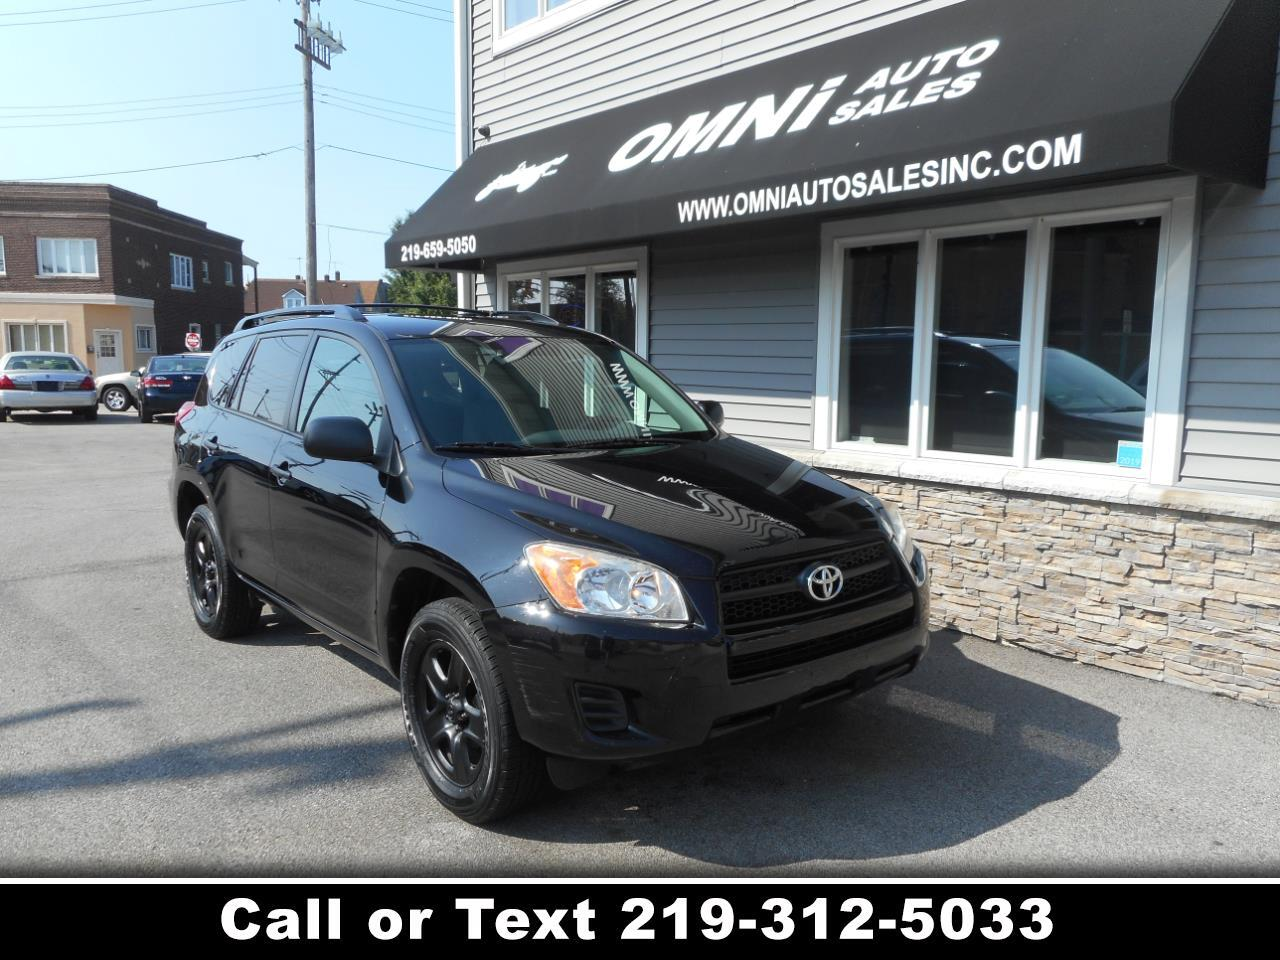 2010 Toyota RAV4 FWD 4dr 4-cyl 4-Spd AT (Natl)